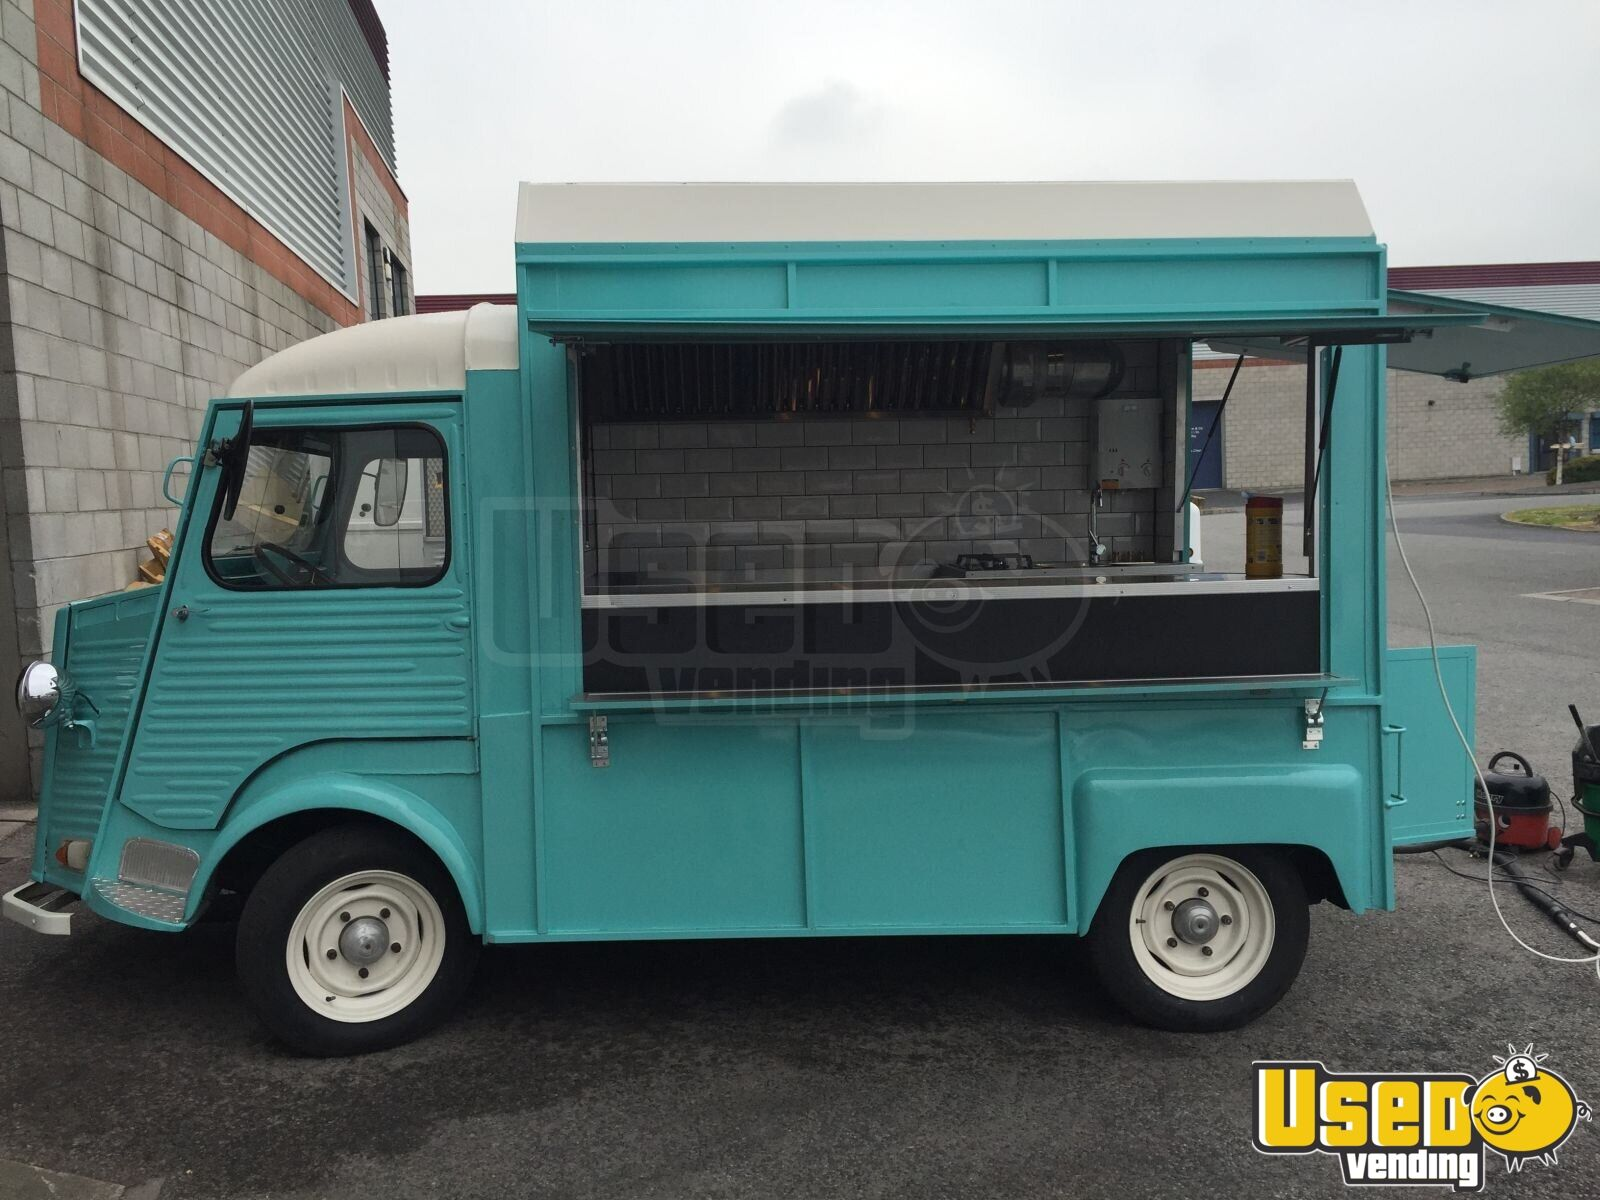 Trucks For Sale: Coffee Truck For Sale In New York